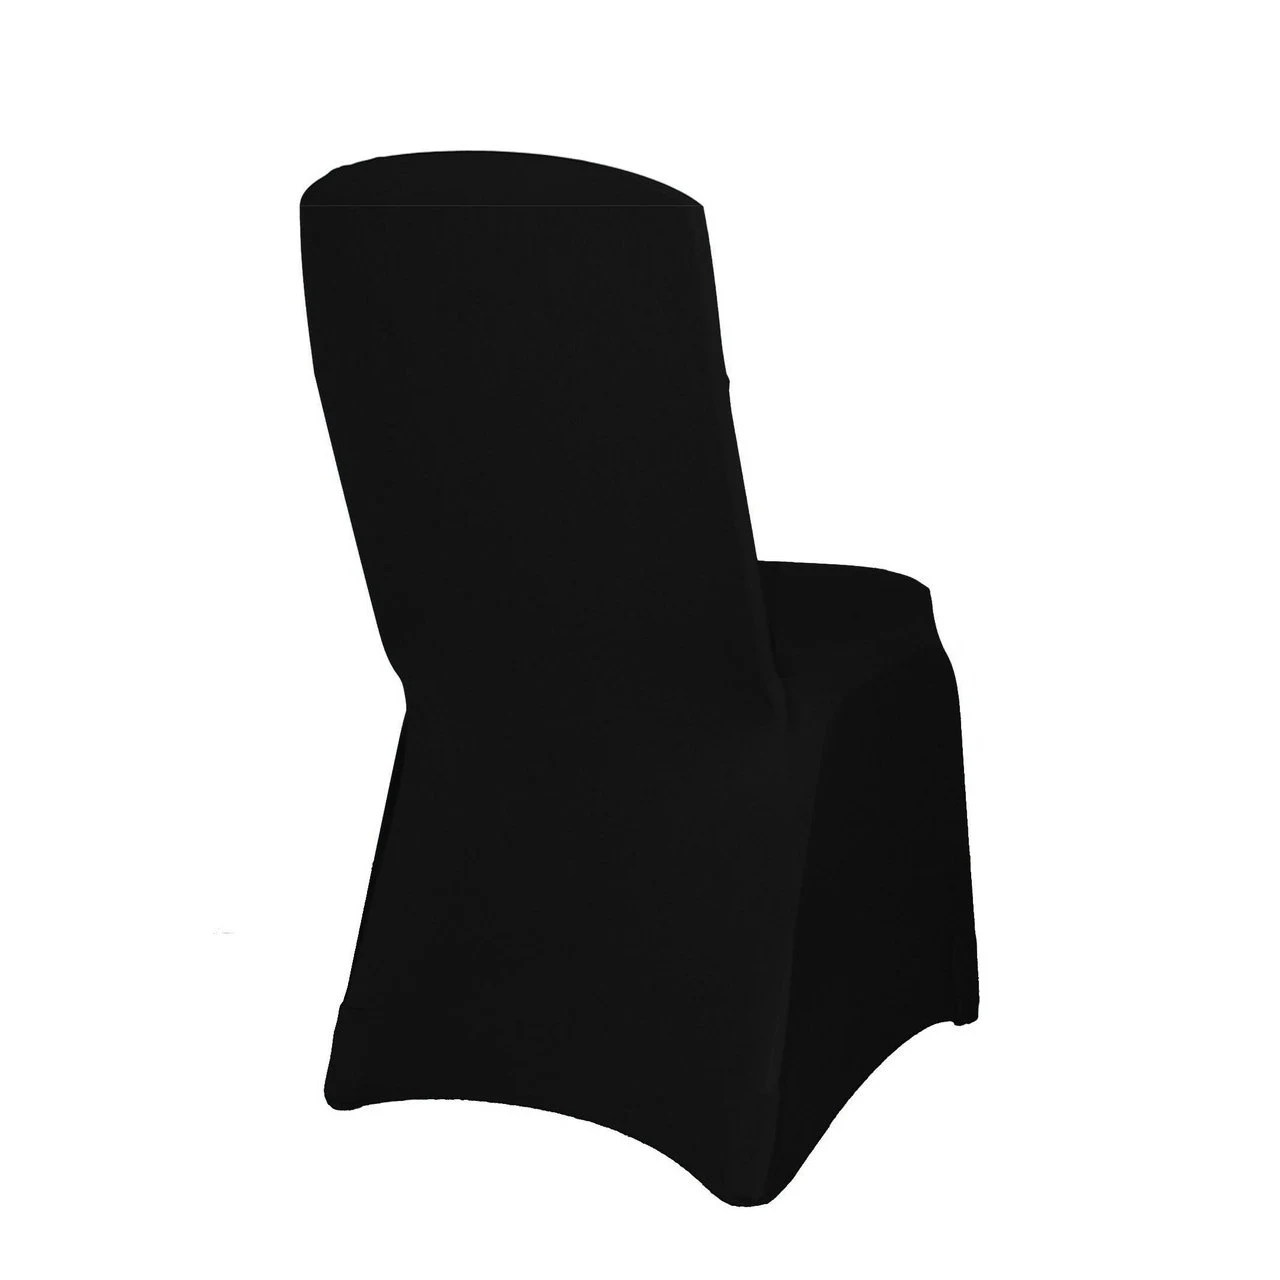 banquet chair covers wholesale white rolling black square top spandex cover etsy image 0